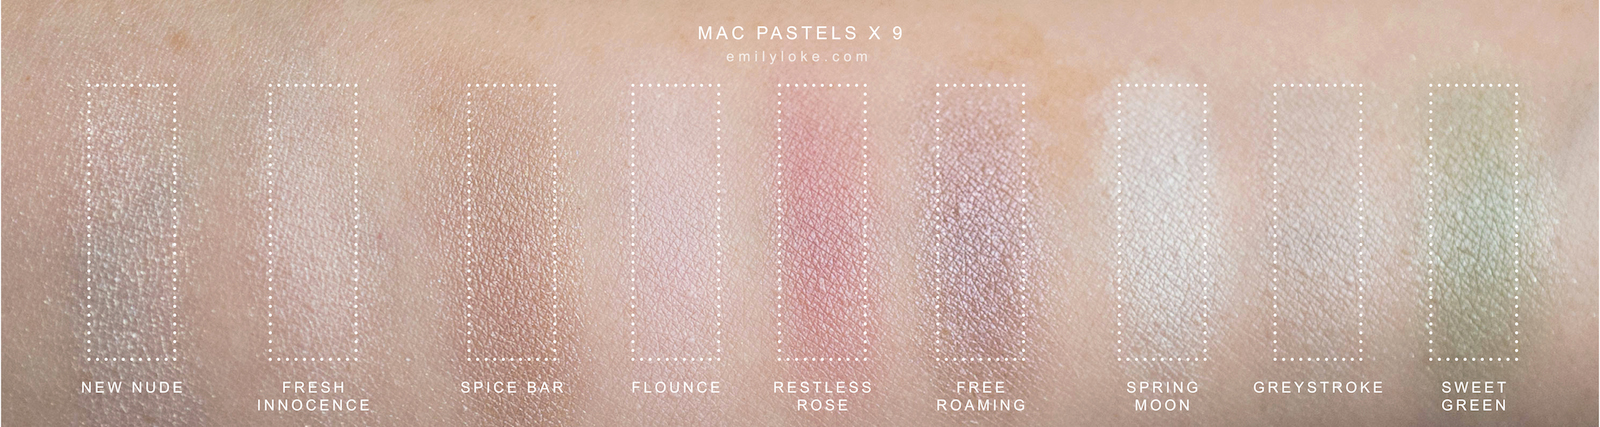 MAC Pastels x 9 Swatches 2